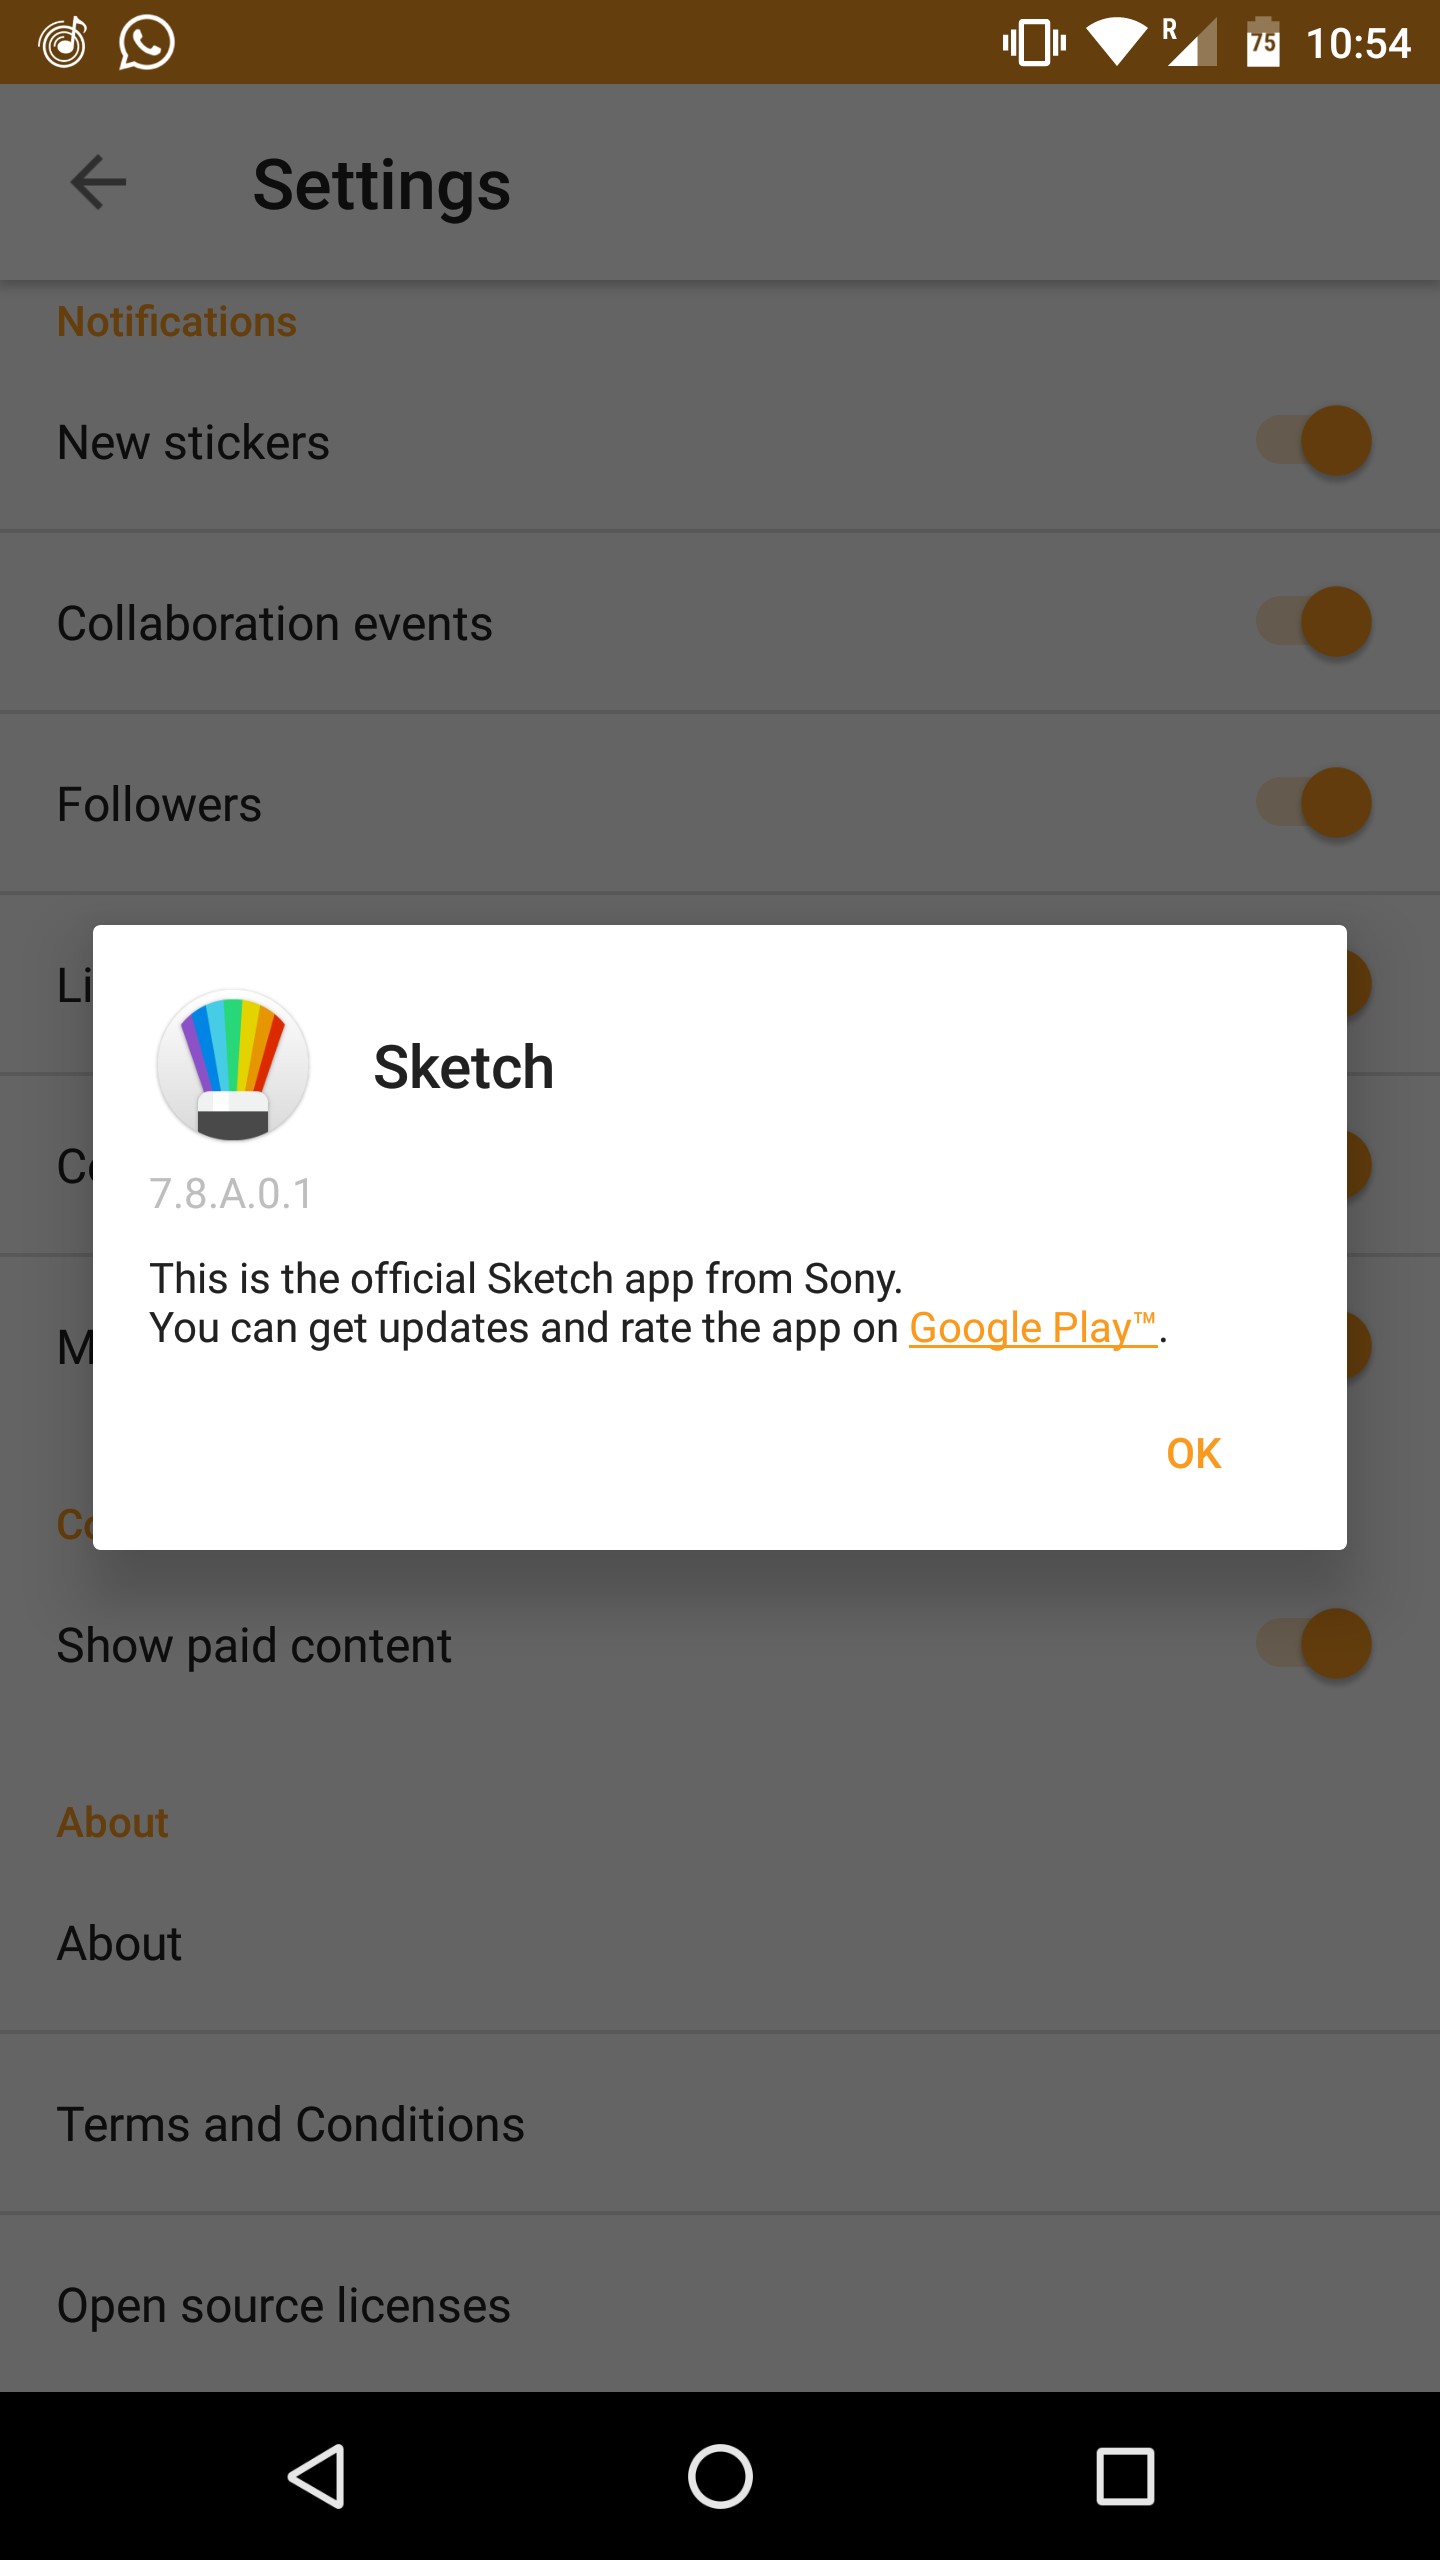 Sony Sketch 7 8 A 0 1 Apk — Gizmo Bolt - Exposing Technology